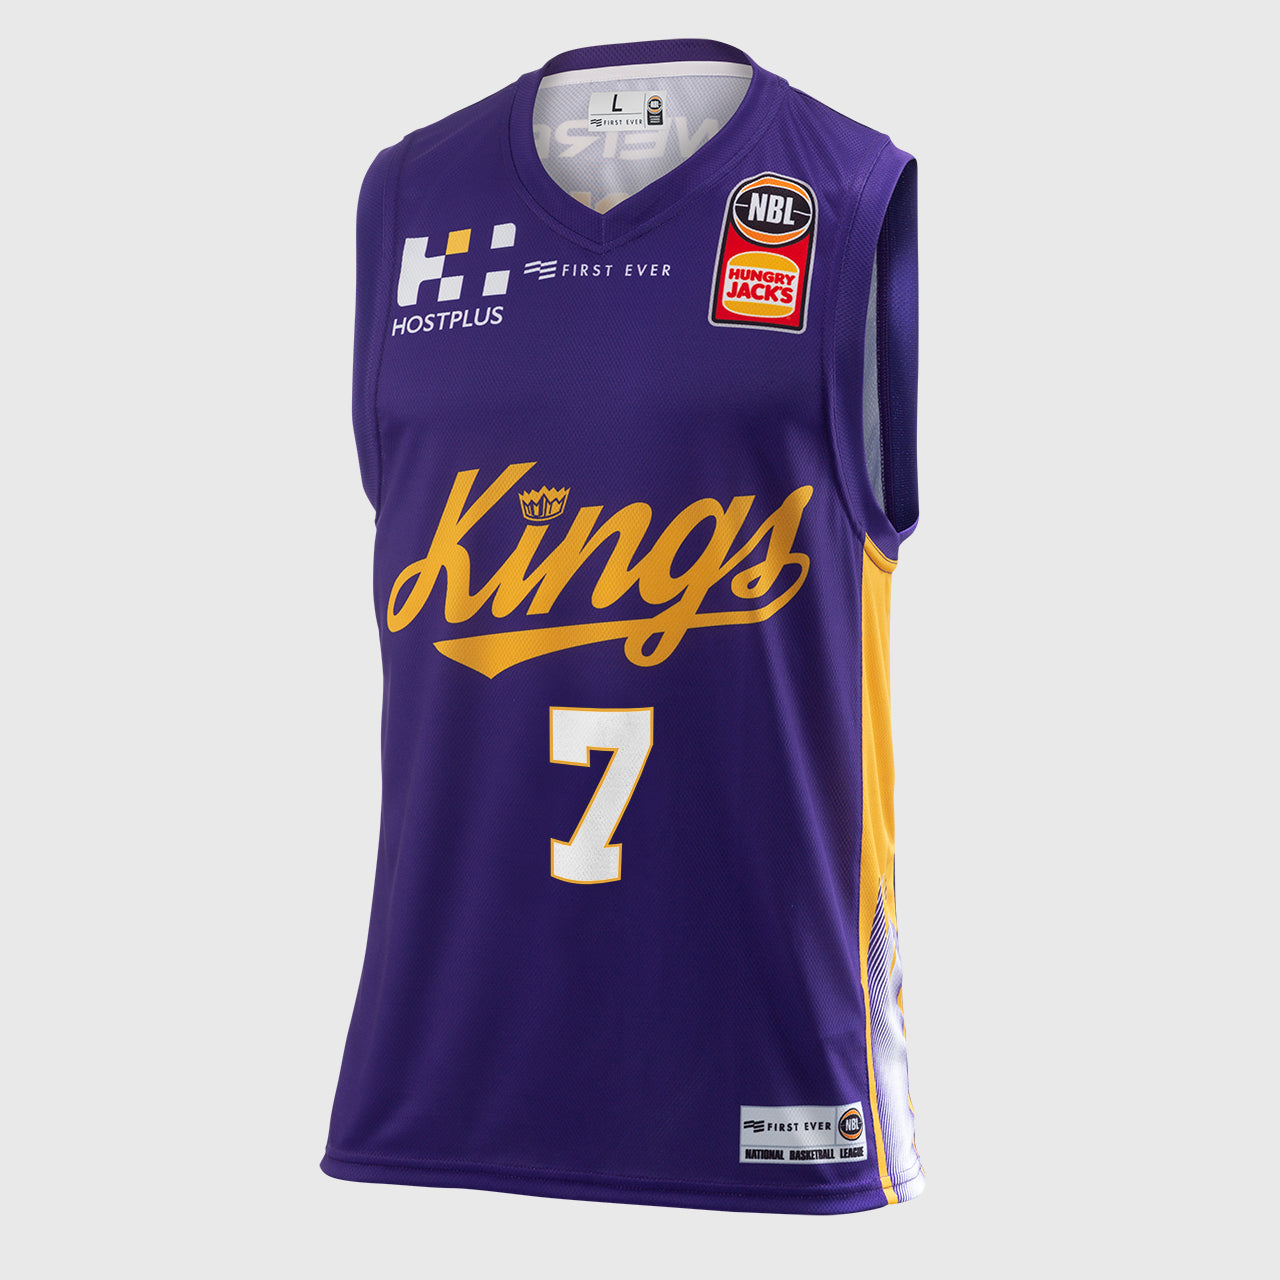 Sydney Kings 18/19 Authentic Jersey - Tom Wilson